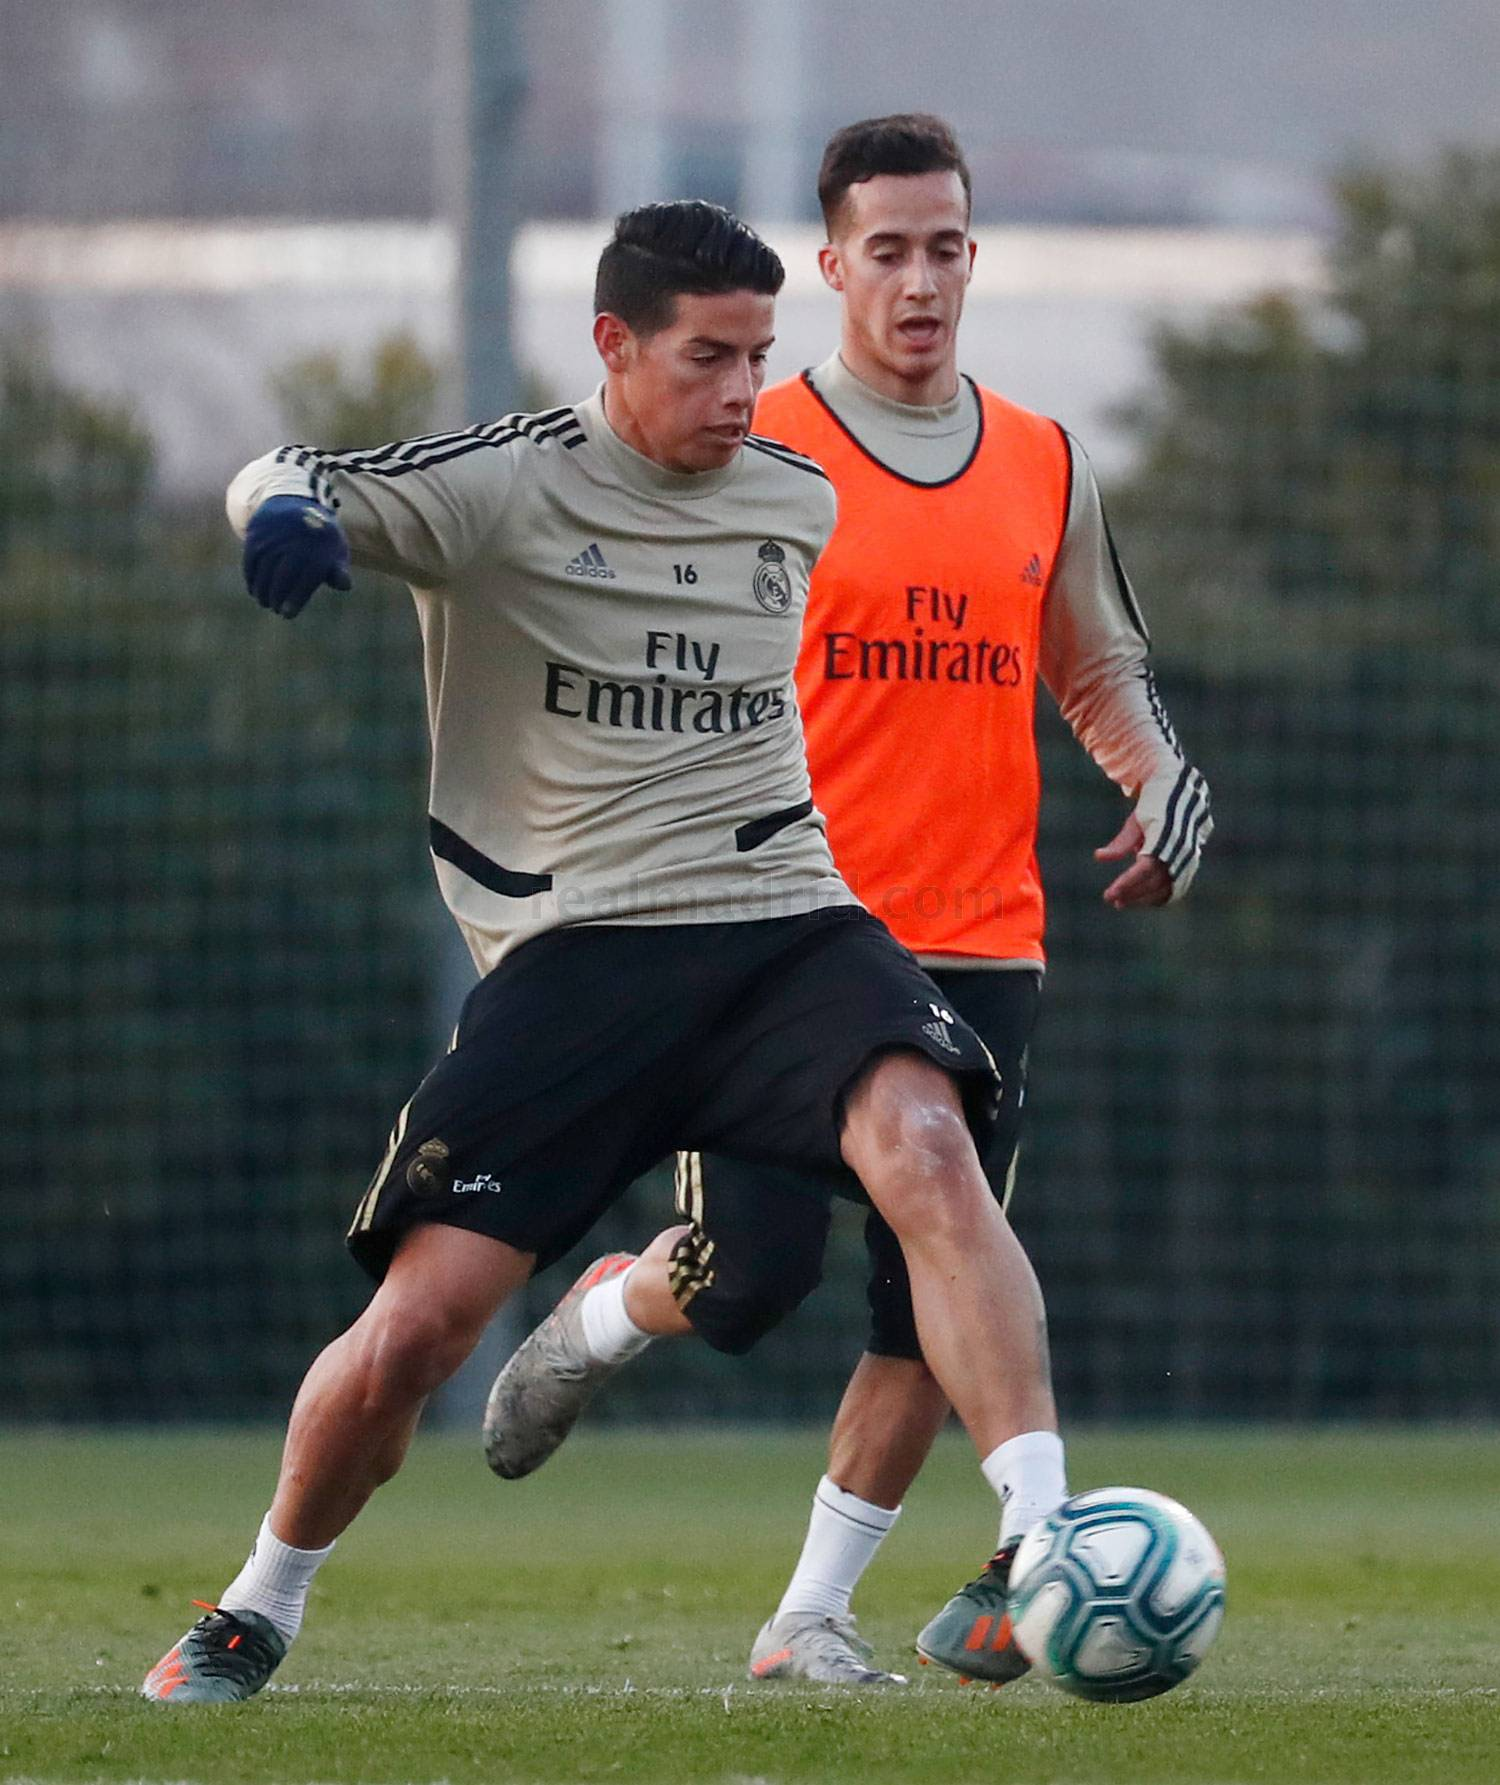 Real Madrid - Entrenamiento del Real Madrid  - 14-01-2020